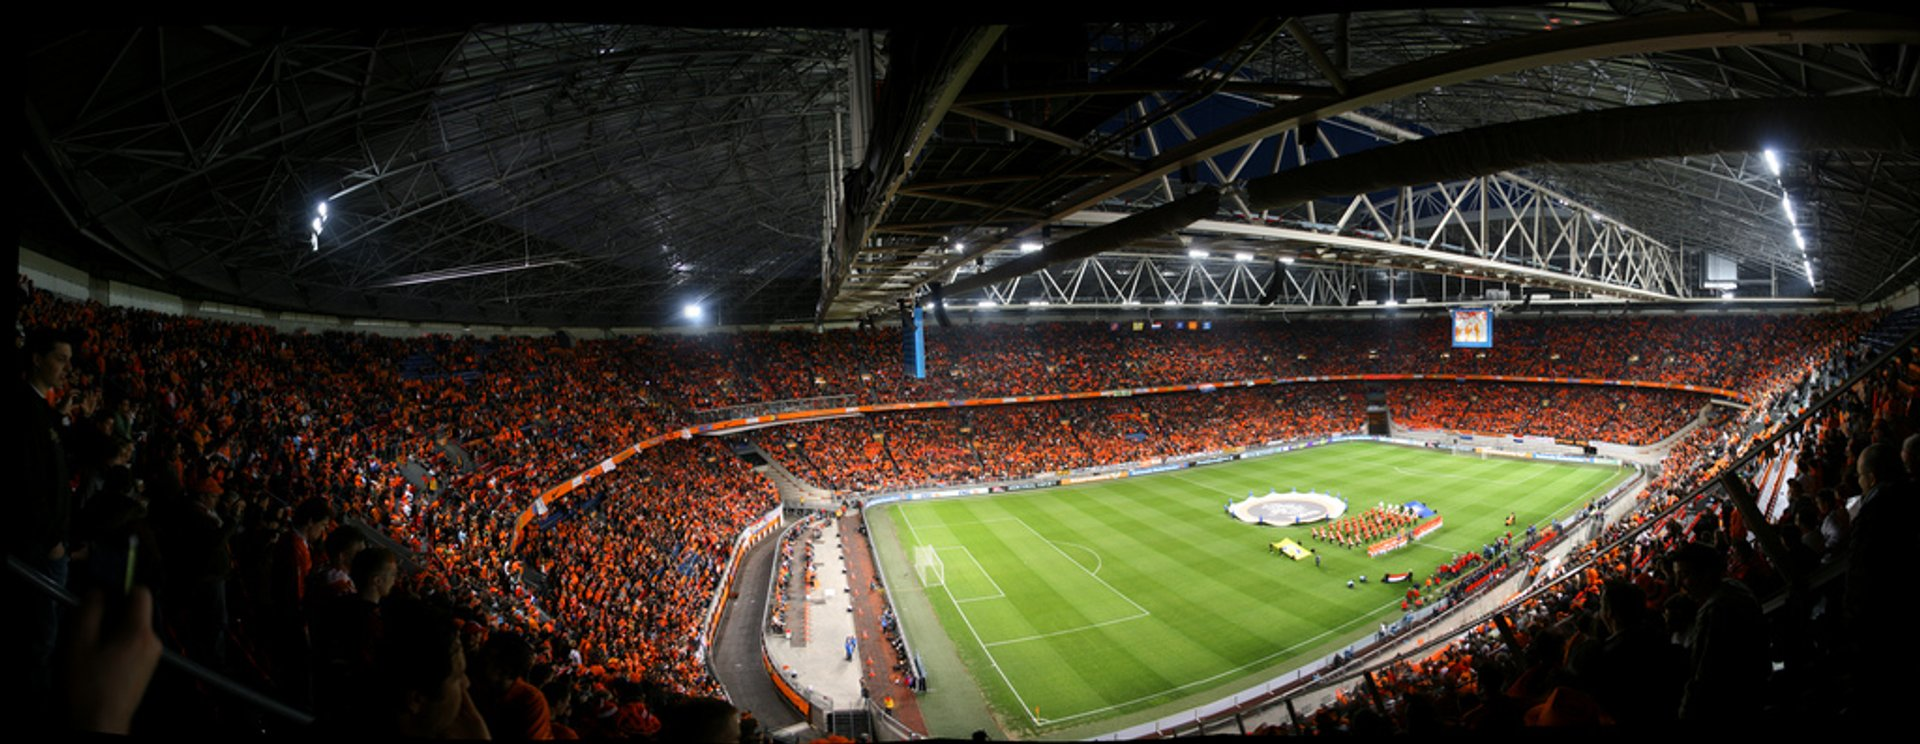 Worldcup qualification game Netherlands vs. Macedonia in Amsterdam, The Netherlands 2020